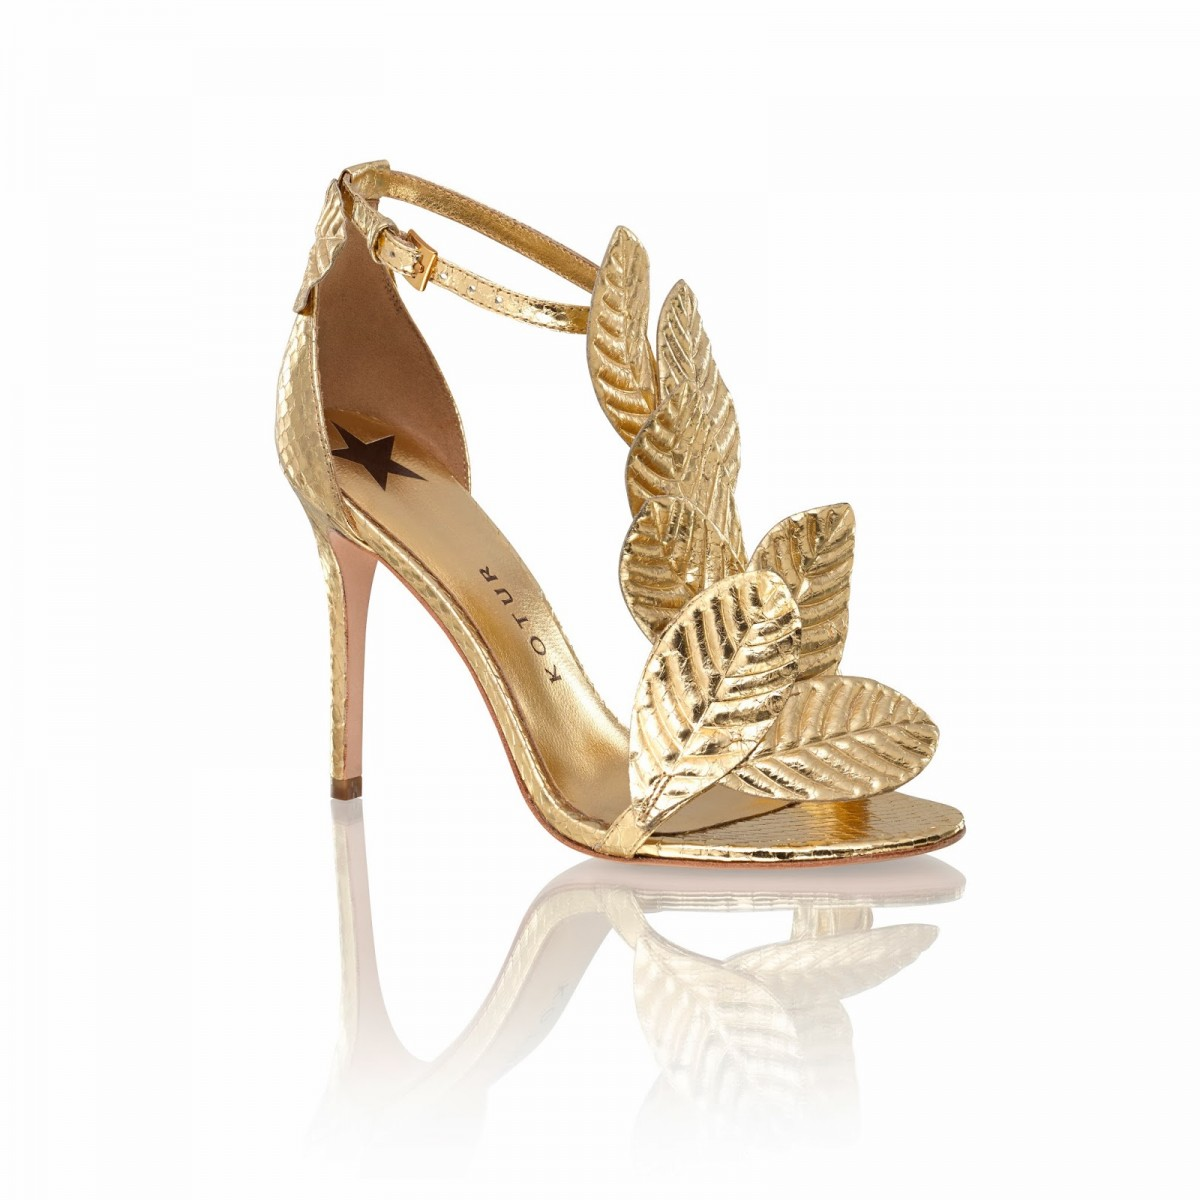 gilda-kotur-shoes-gold-snakeskin-suede-ss14-3quarters